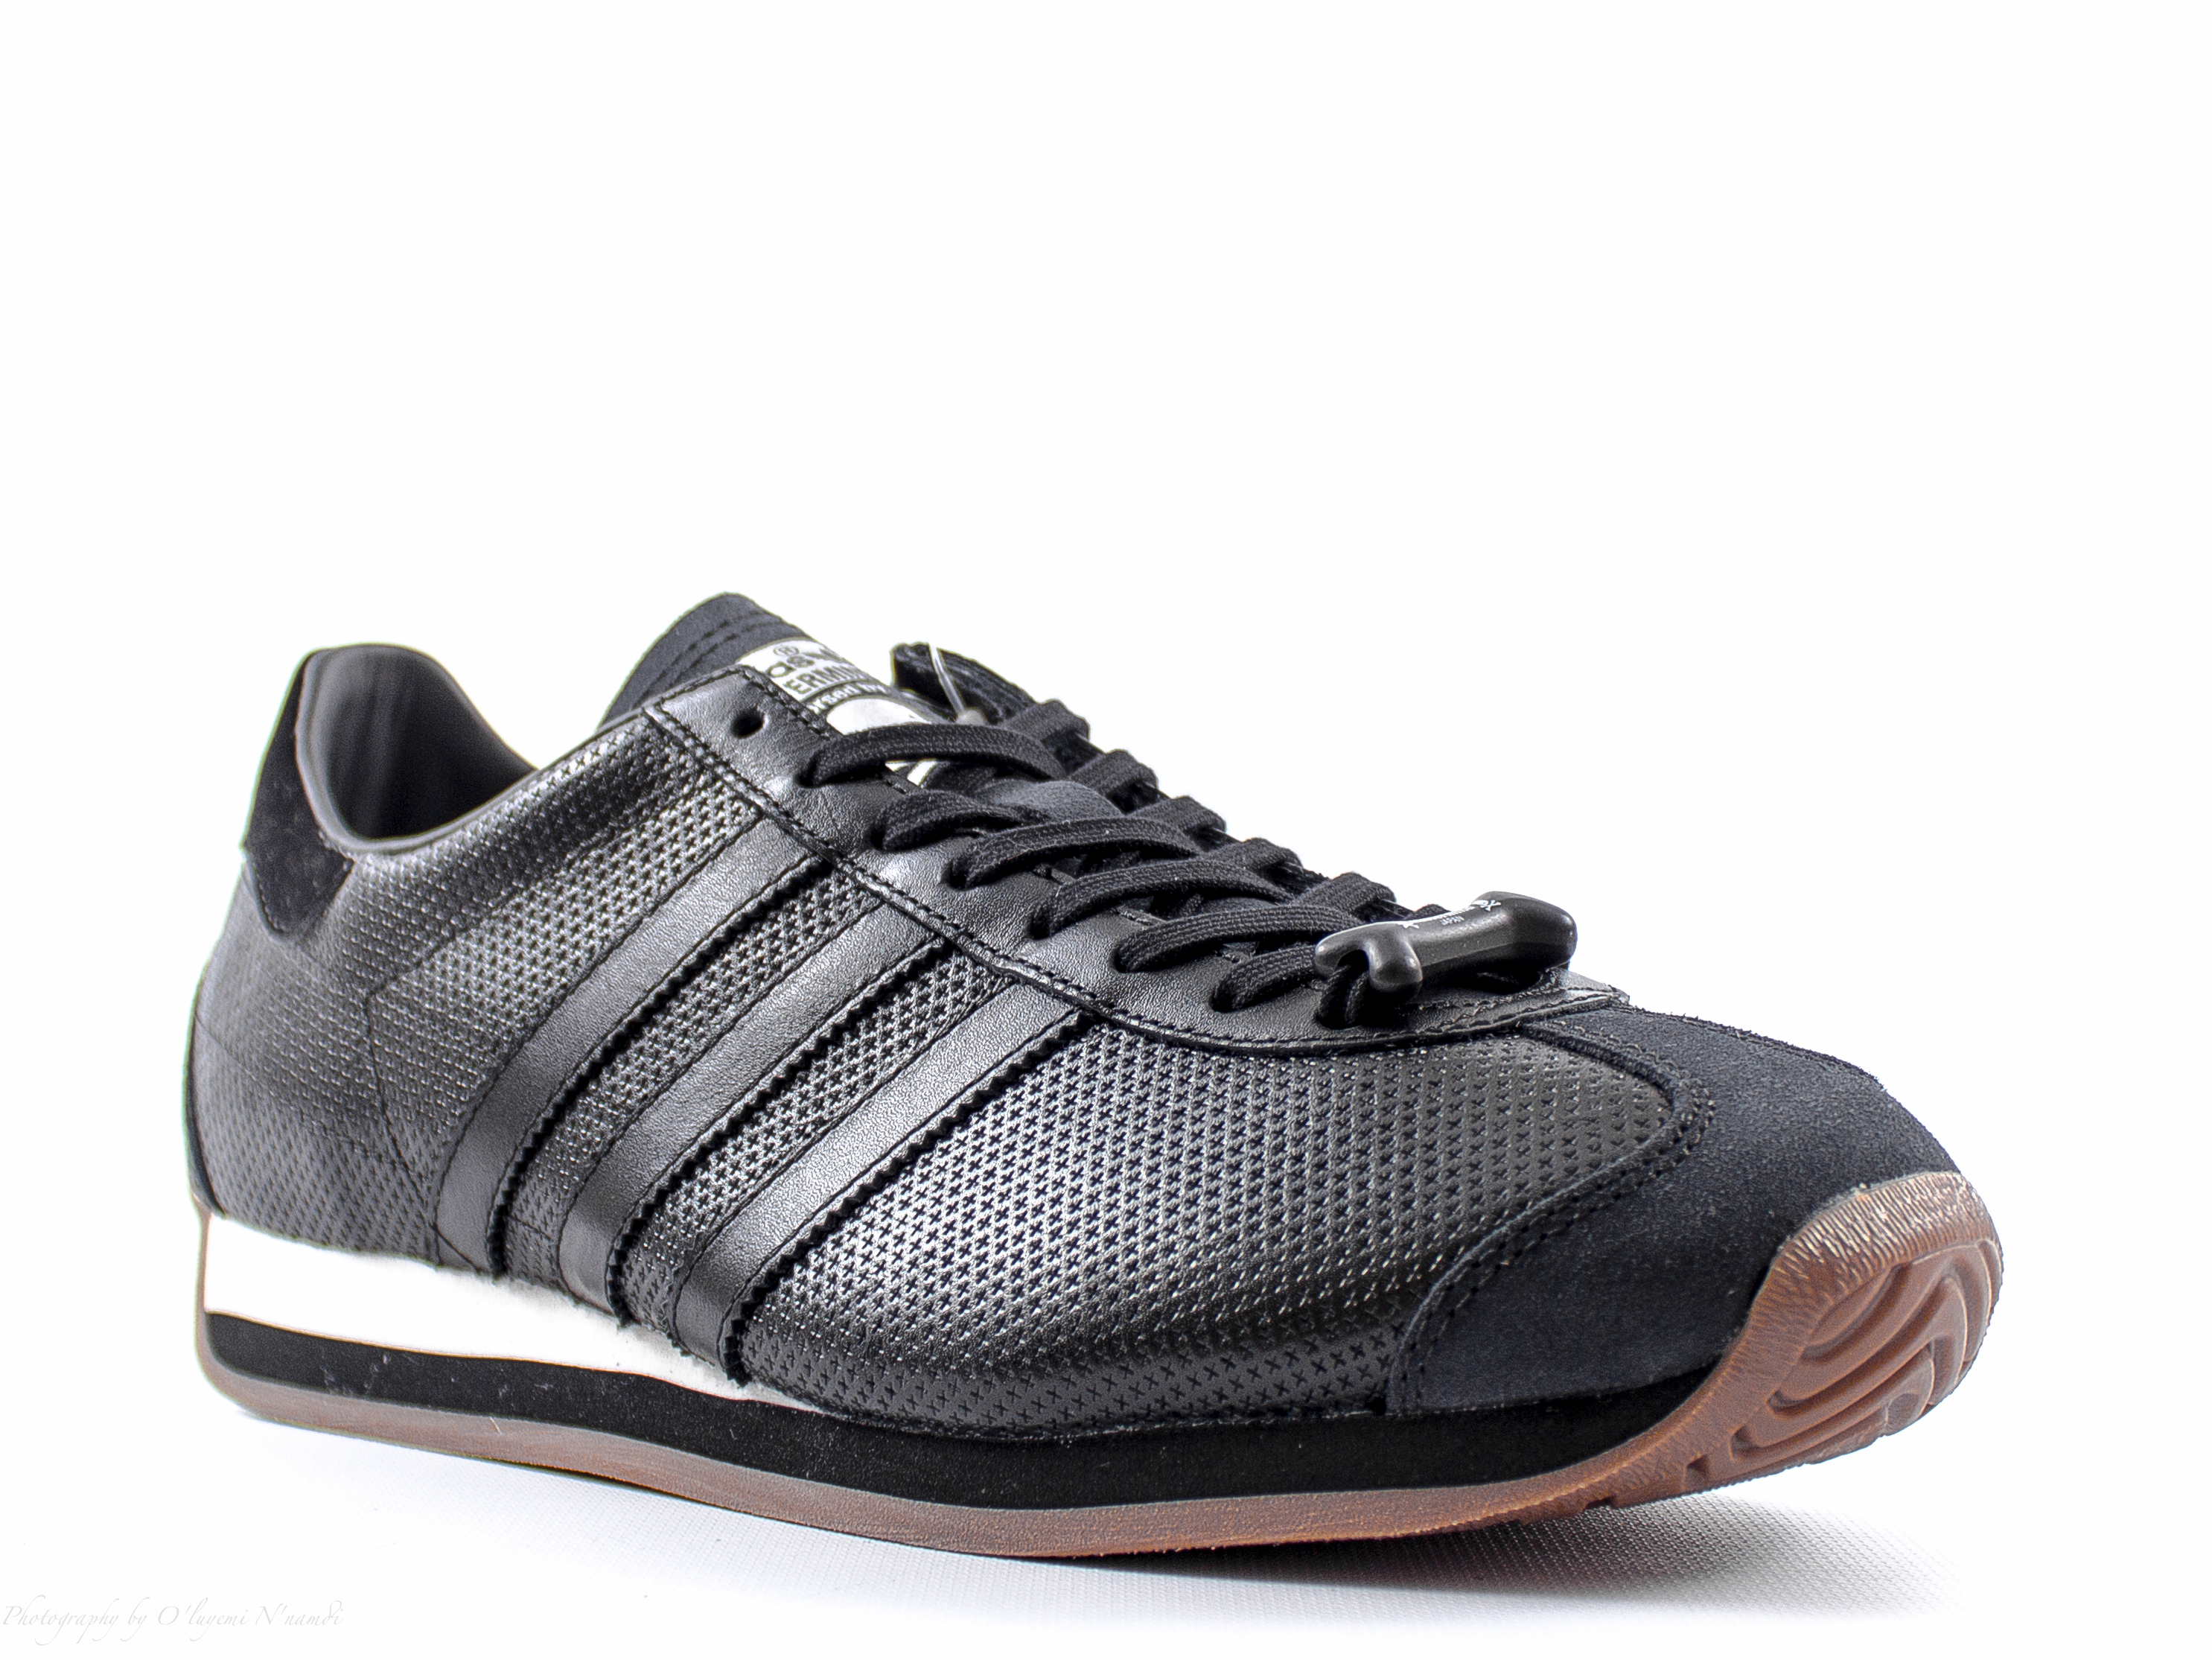 Original Adidas Shoes Are Made In What Country